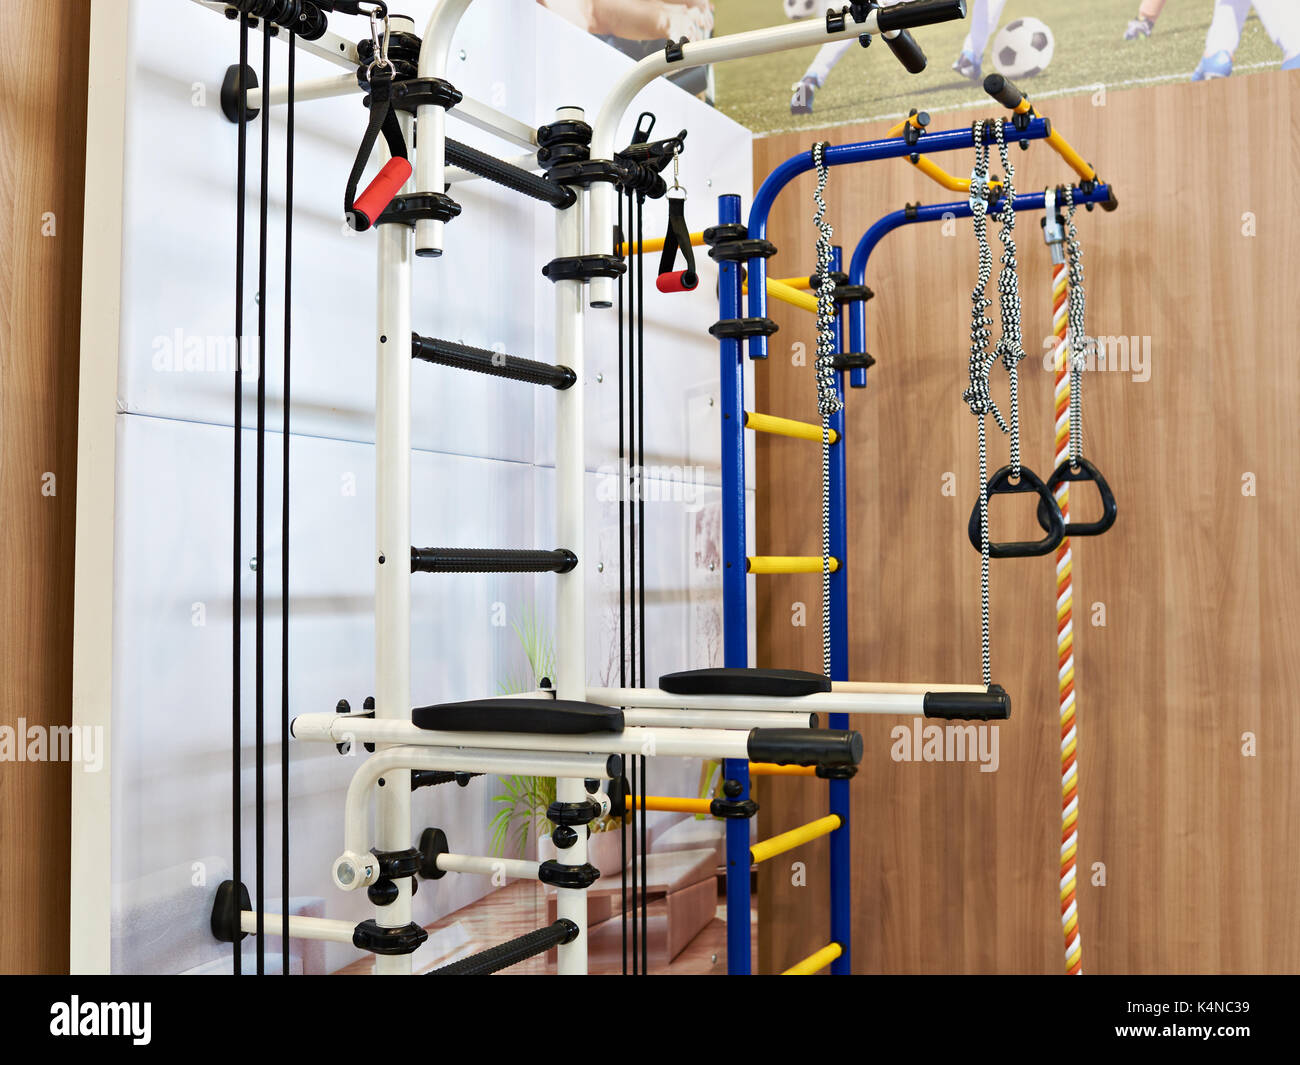 Home Sports Complex With A Horizontal Bar, Parallel Bars And A Gymnastics Wall  Bars